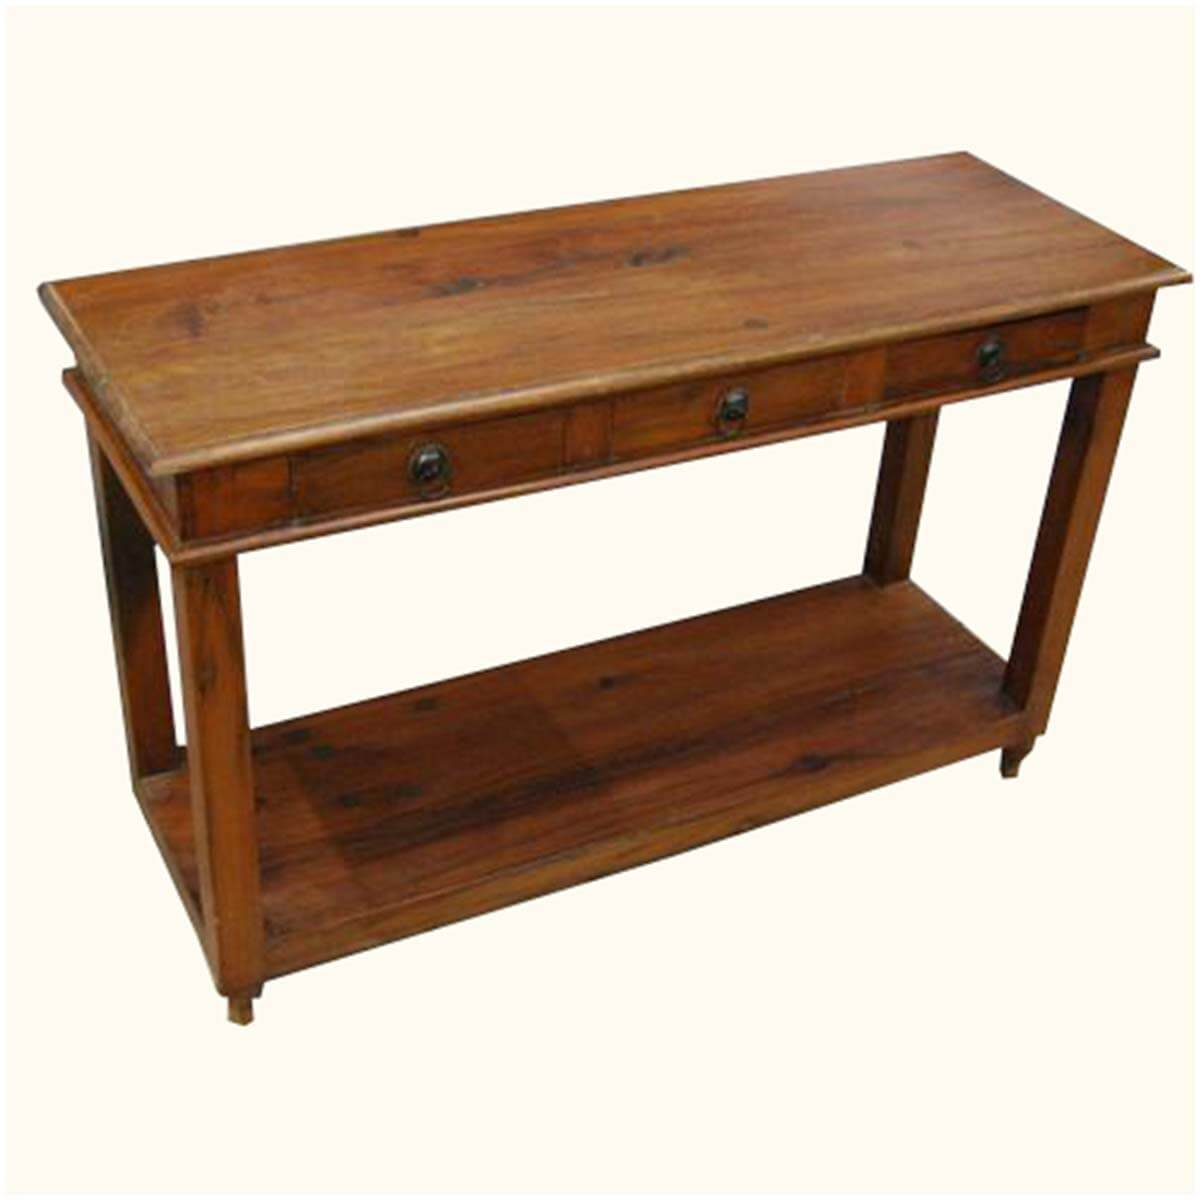 Solid Wood Entry Sofa Hall Console Foyer Table w 3 Drawers